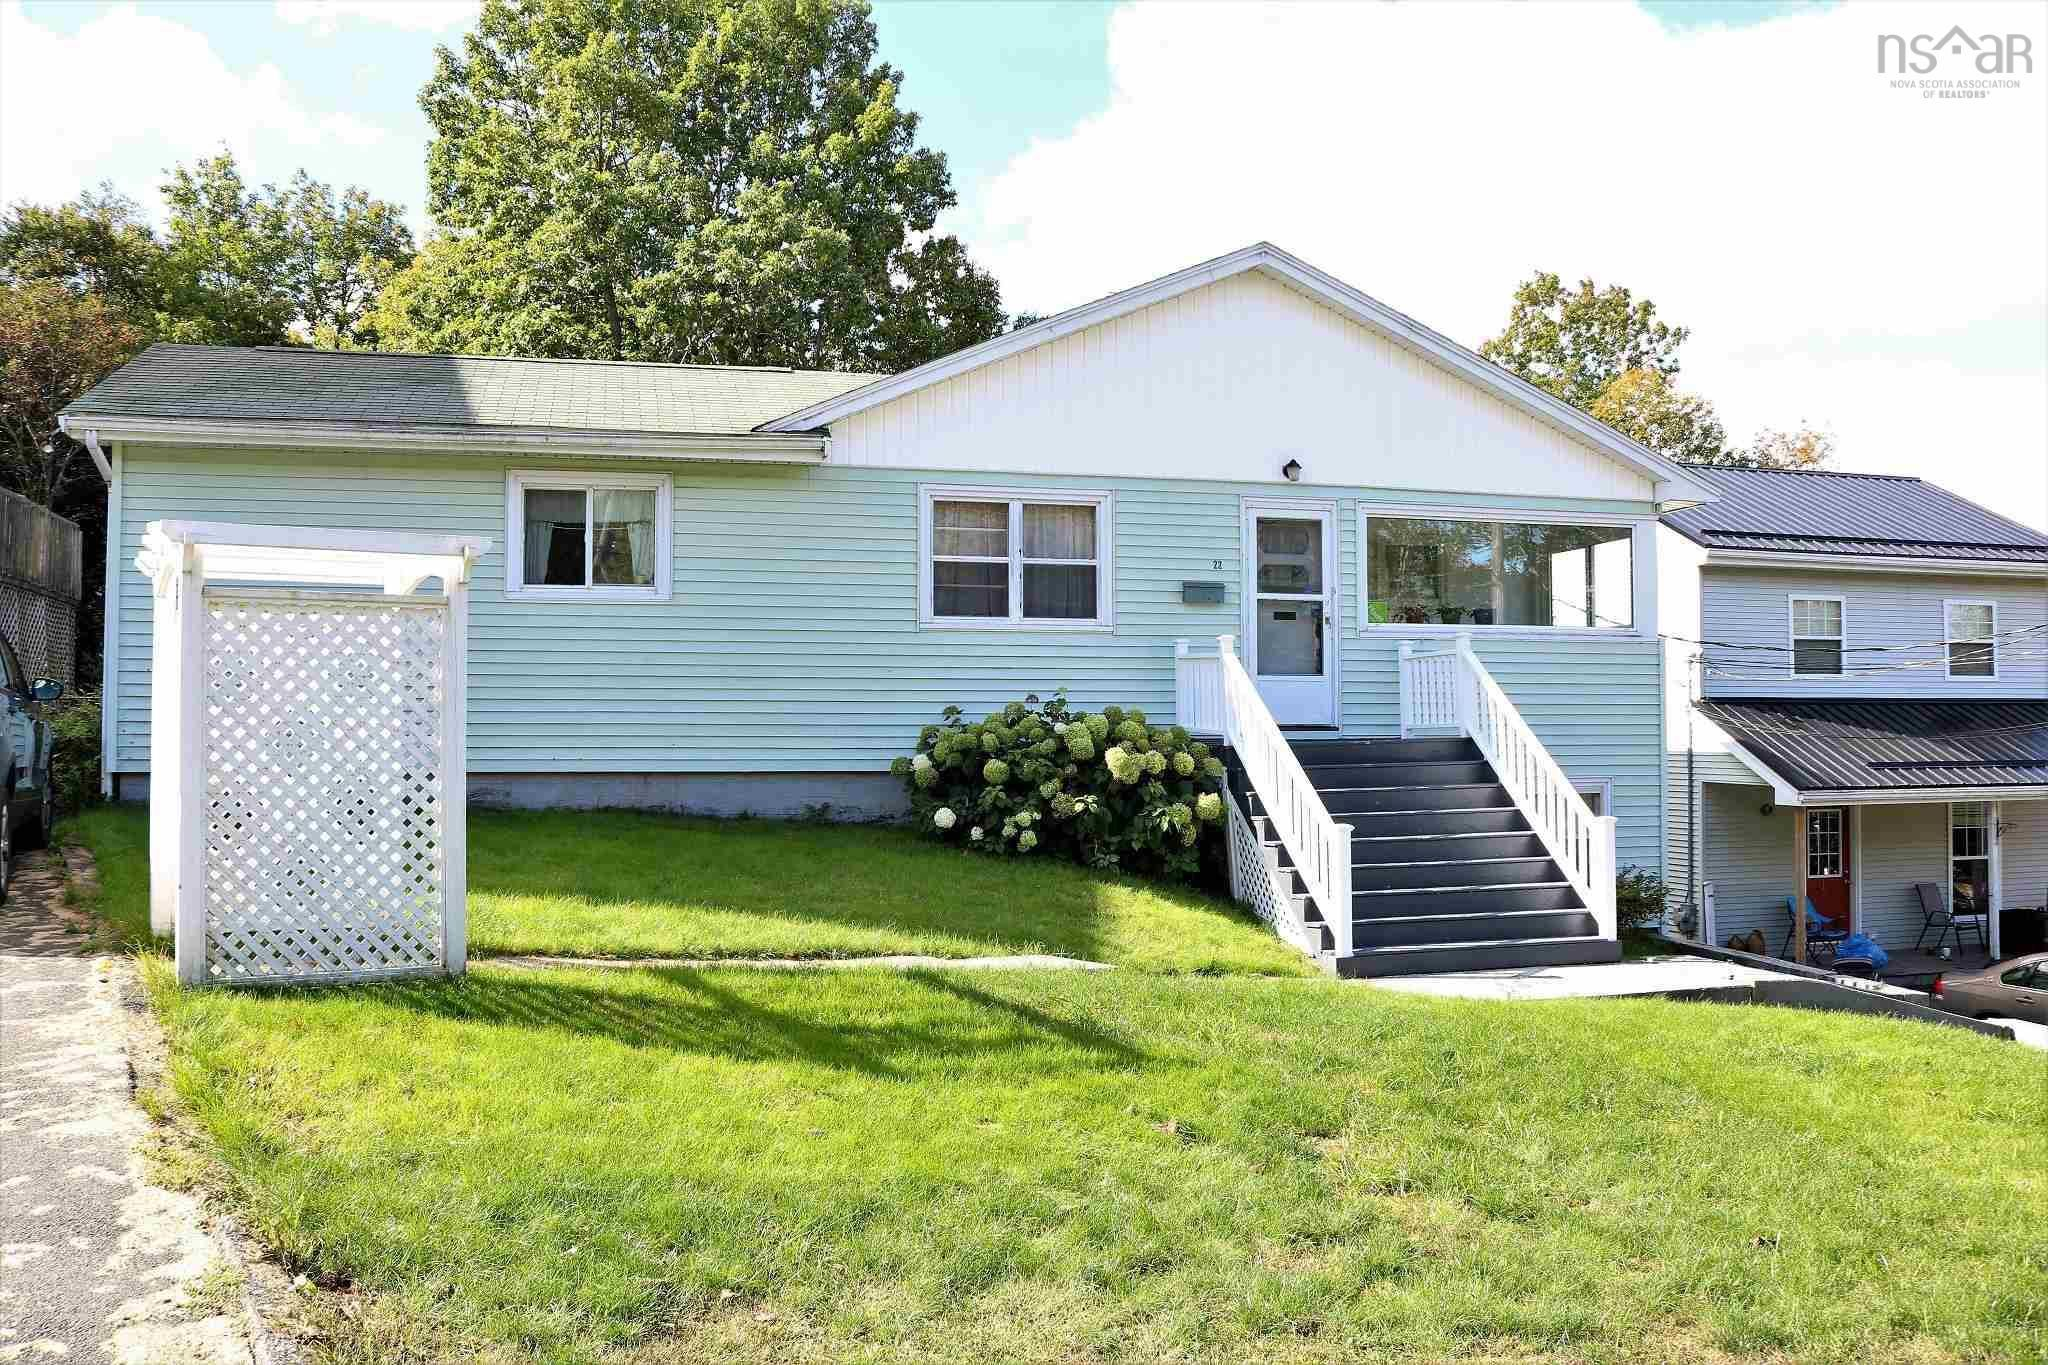 Main Photo: 22 Glenwood Avenue in Dartmouth: 12-Southdale, Manor Park Residential for sale (Halifax-Dartmouth)  : MLS®# 202125194